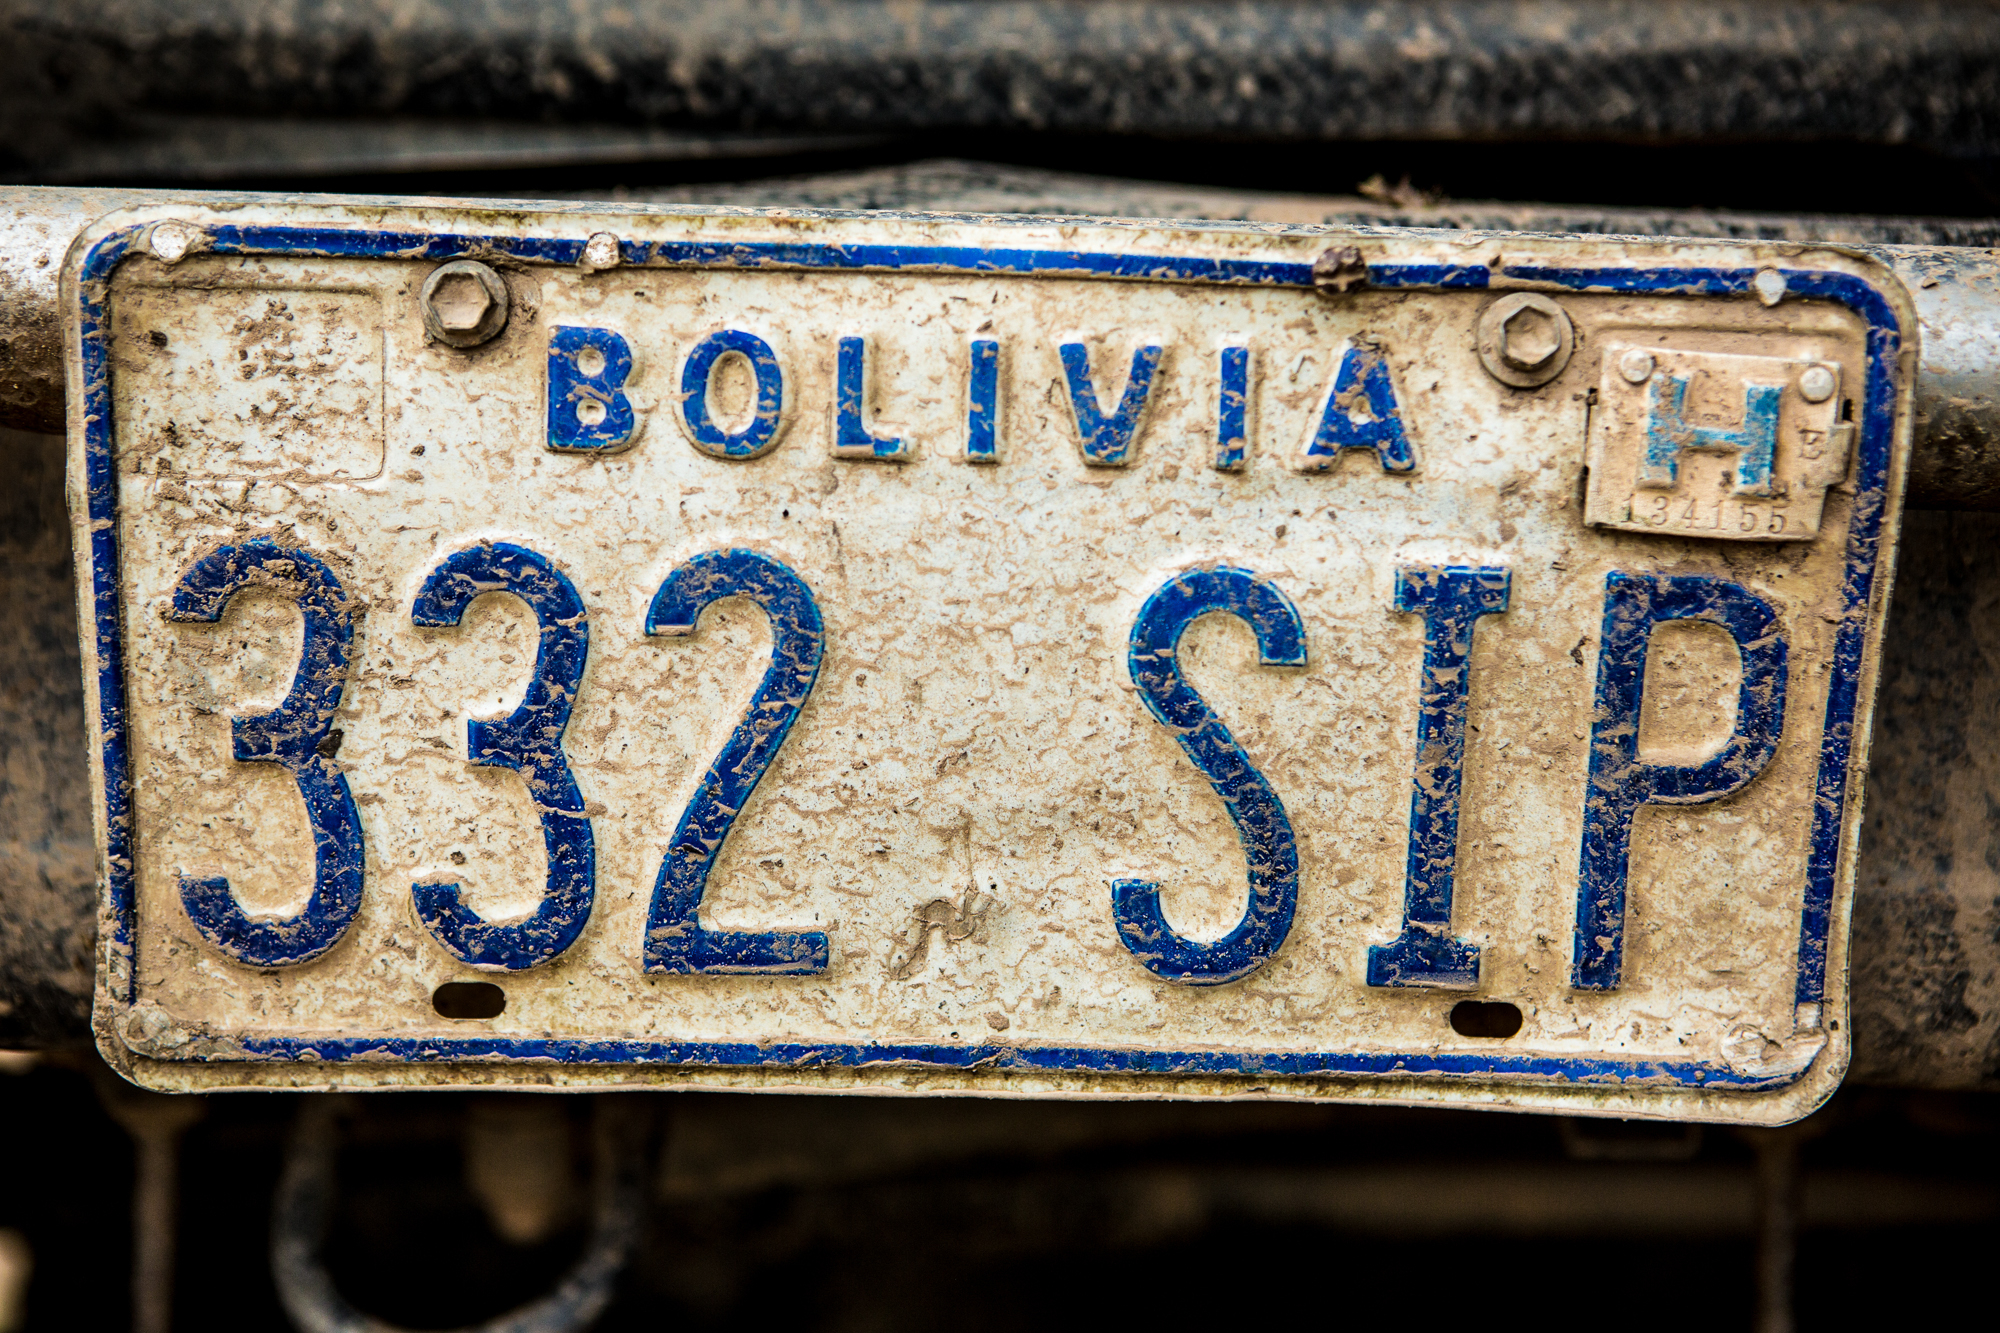 A beat up Bolivian license plate.